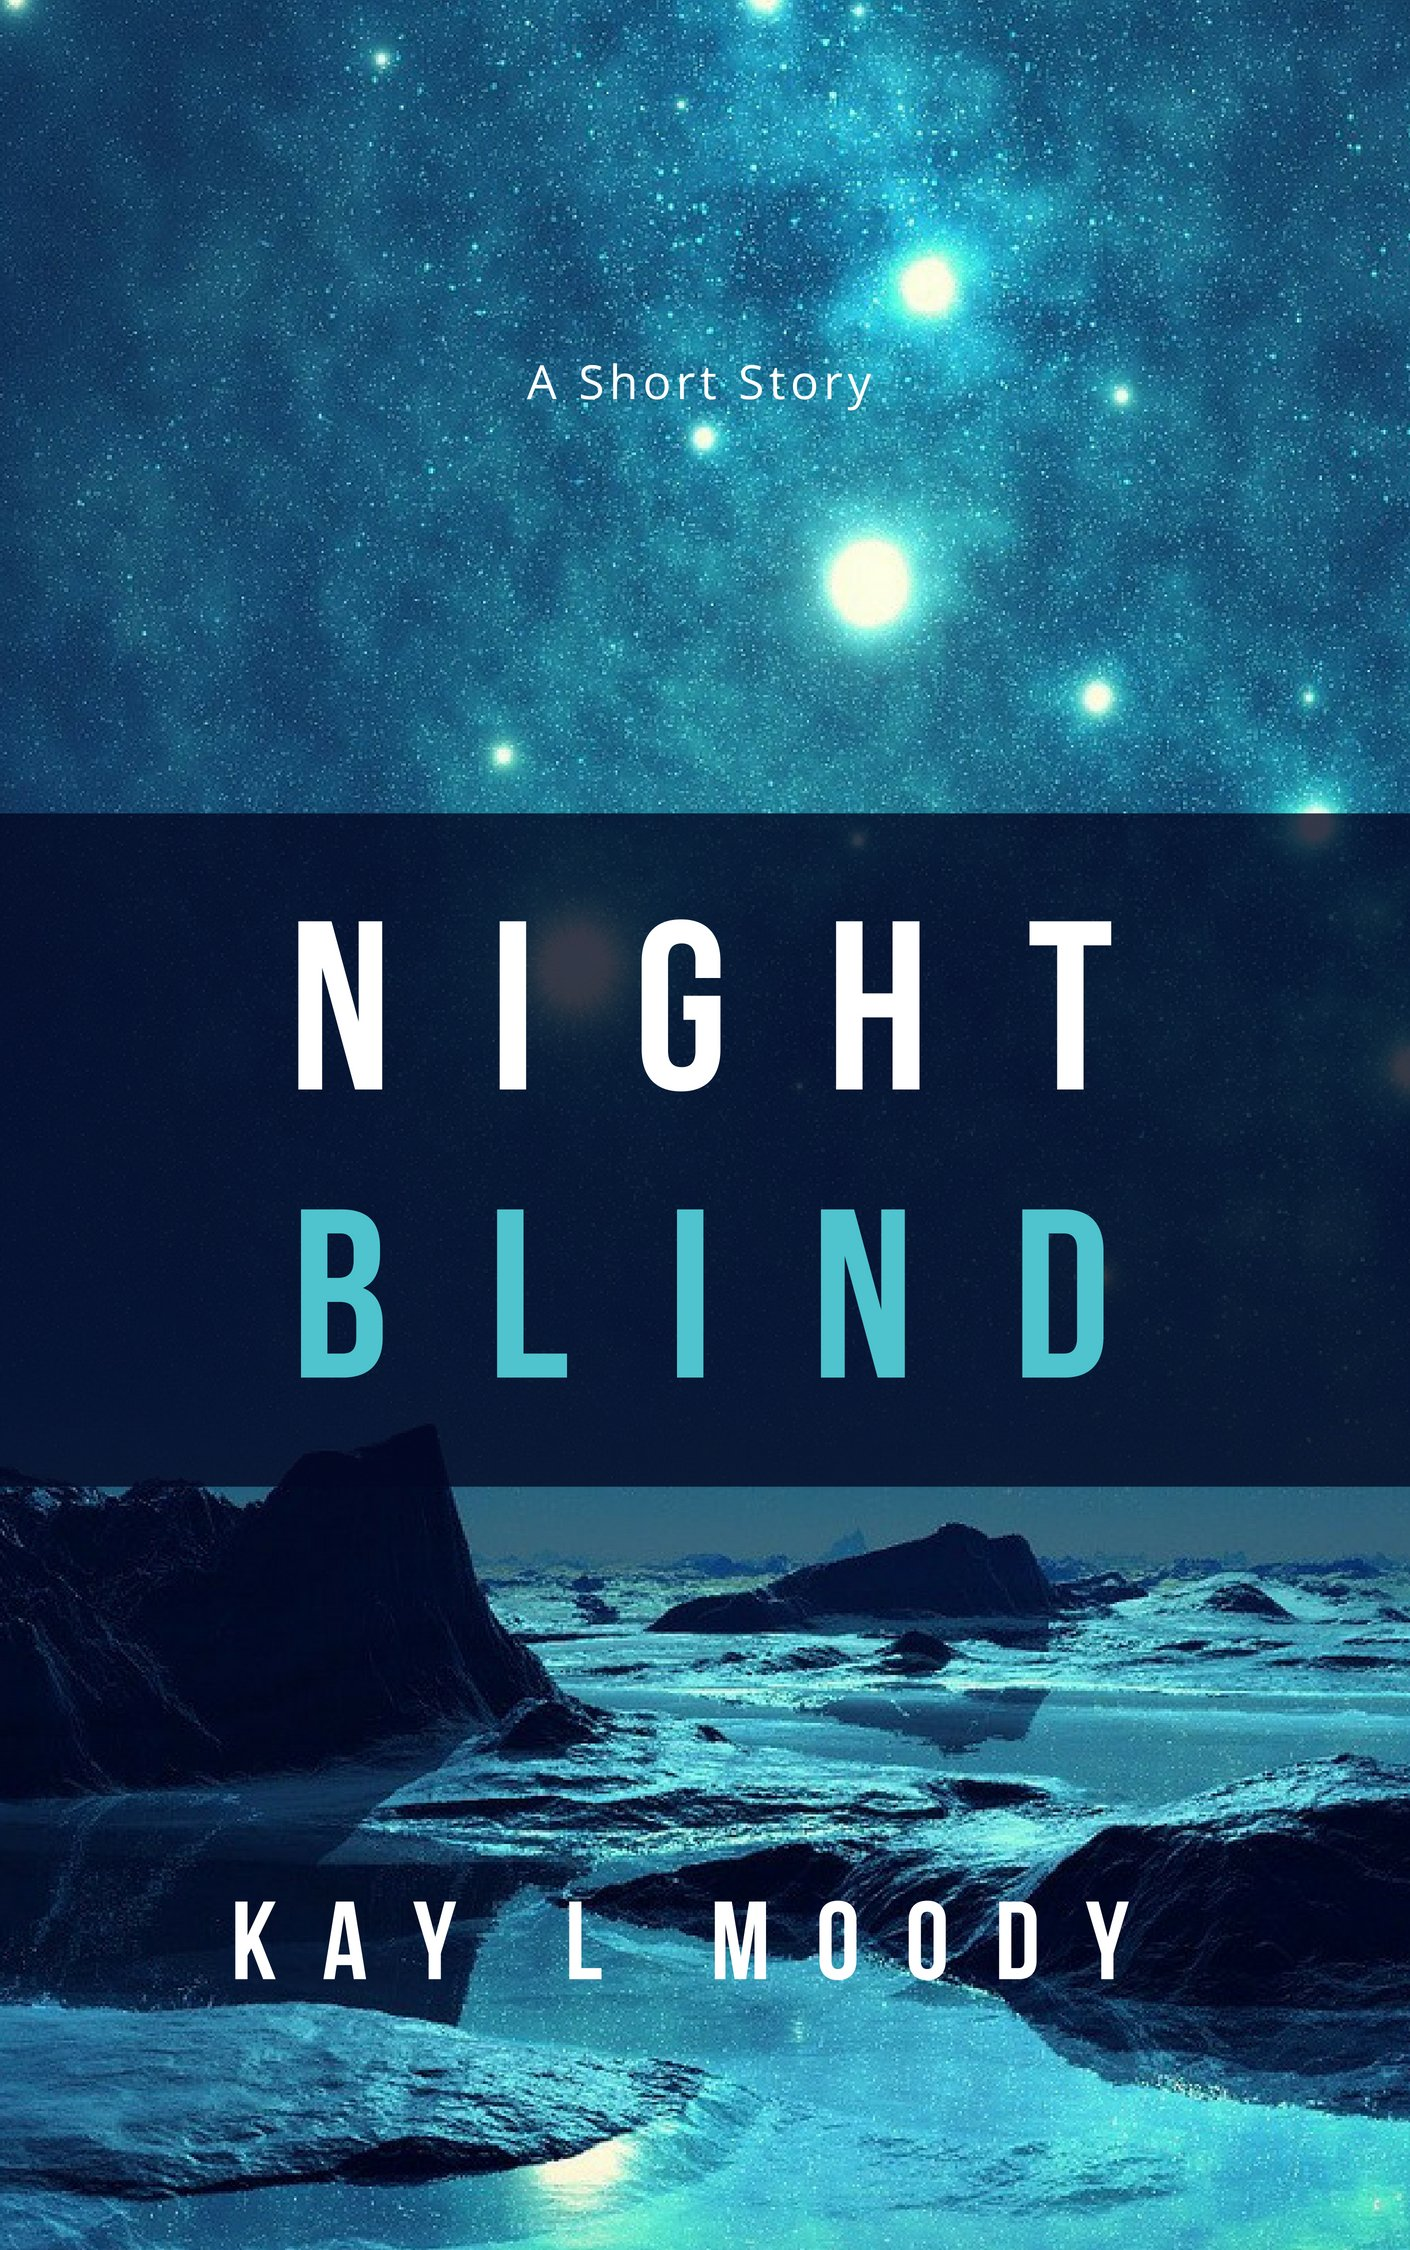 Love free sci fi short stories online? Enjoy this soft sci fi short story, Night Blind. Click through to read it now!